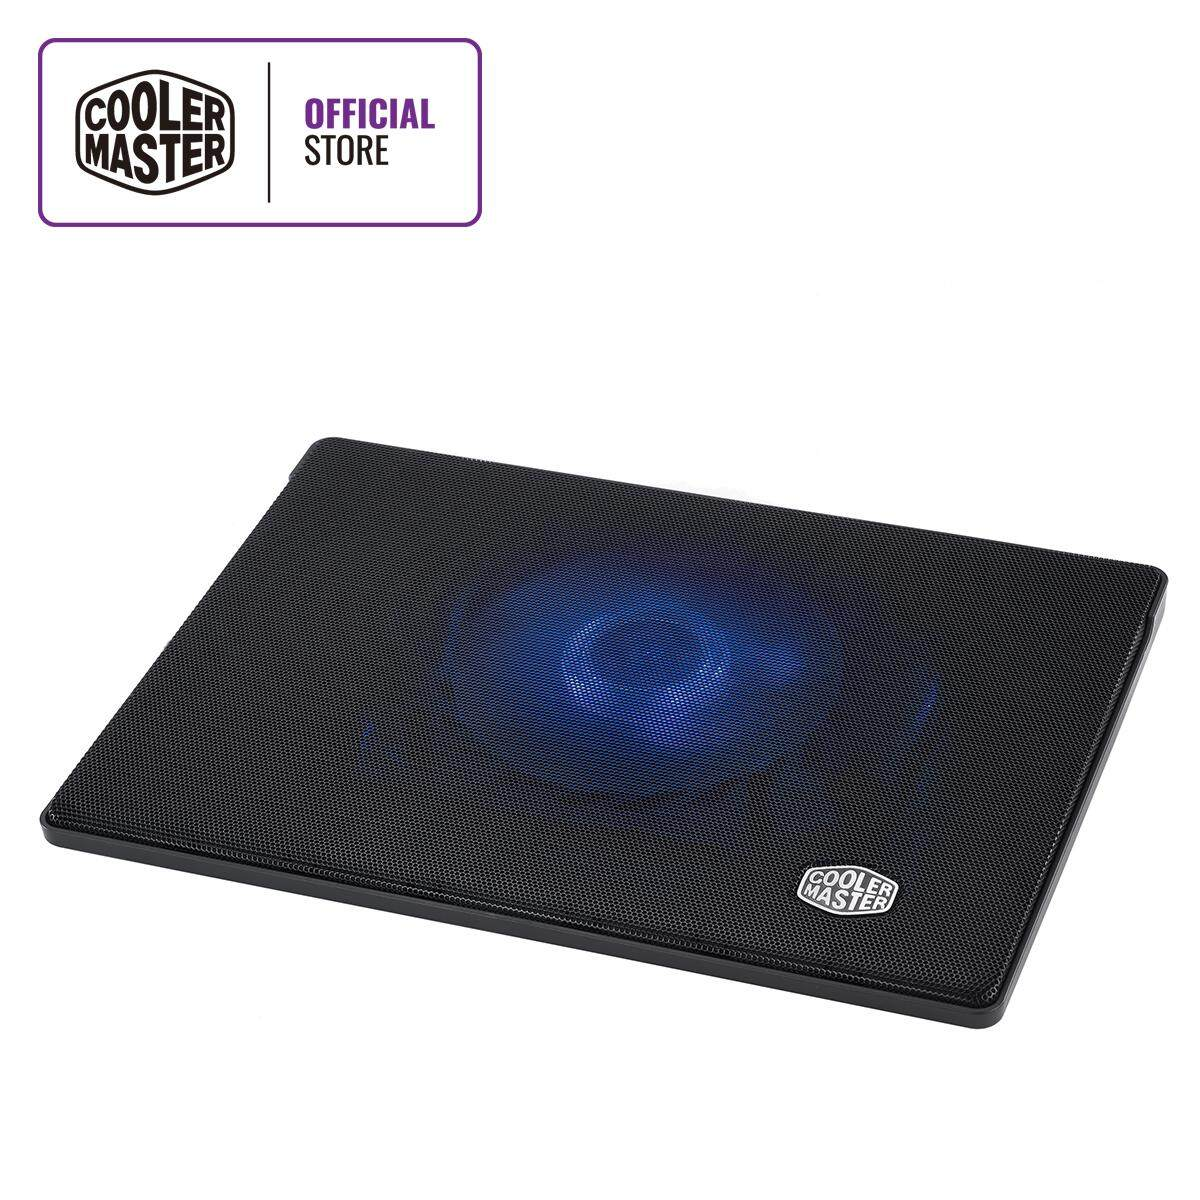 Cooler Master Notepal I300 160mm Blue Led Fan Notebook Cooler By Cooler Master Malaysia.